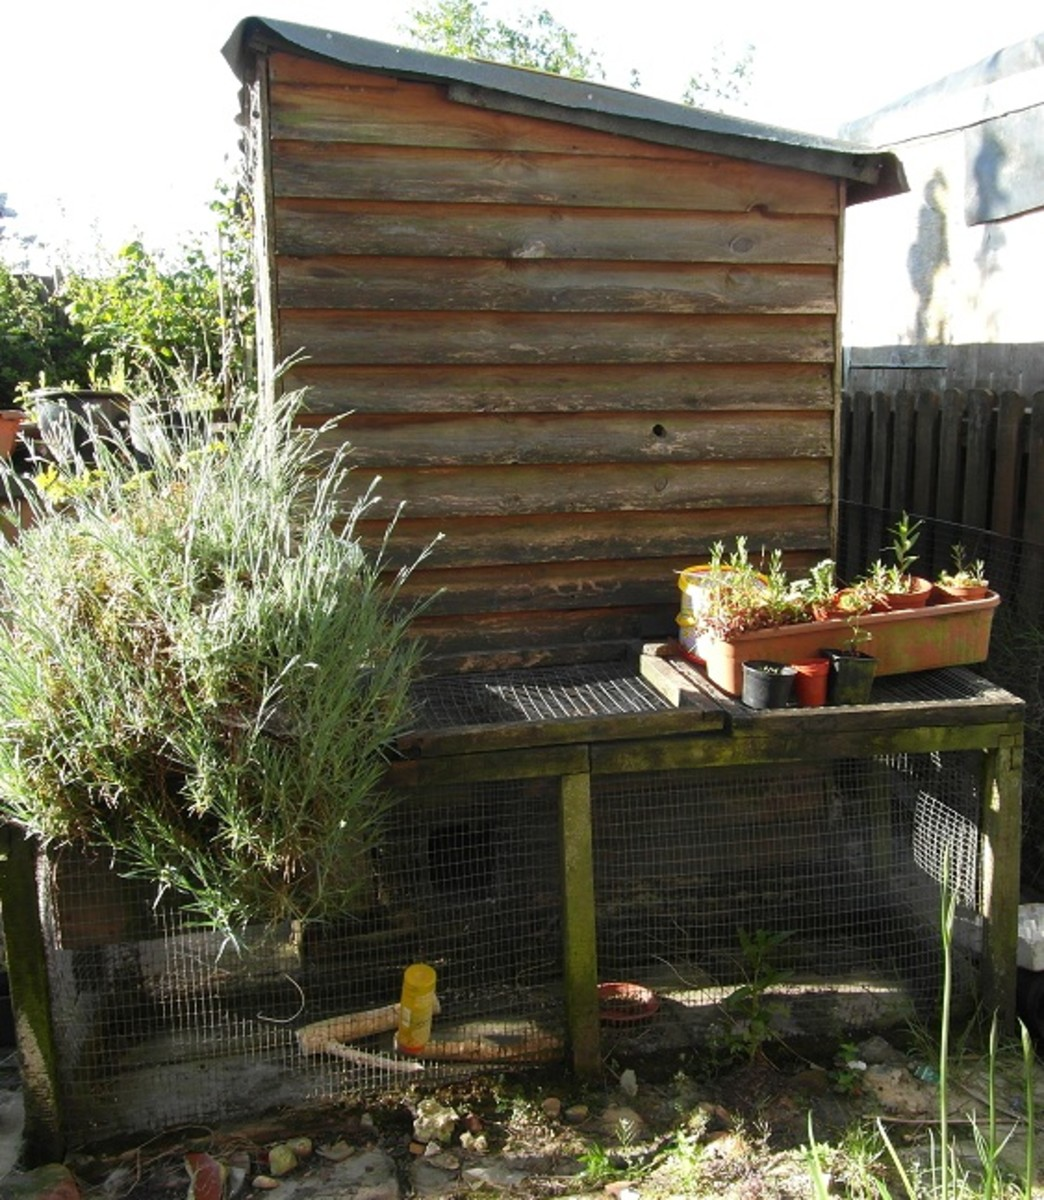 Outdoor housing for dwarf rabbits: A shed with rabbit run attached.